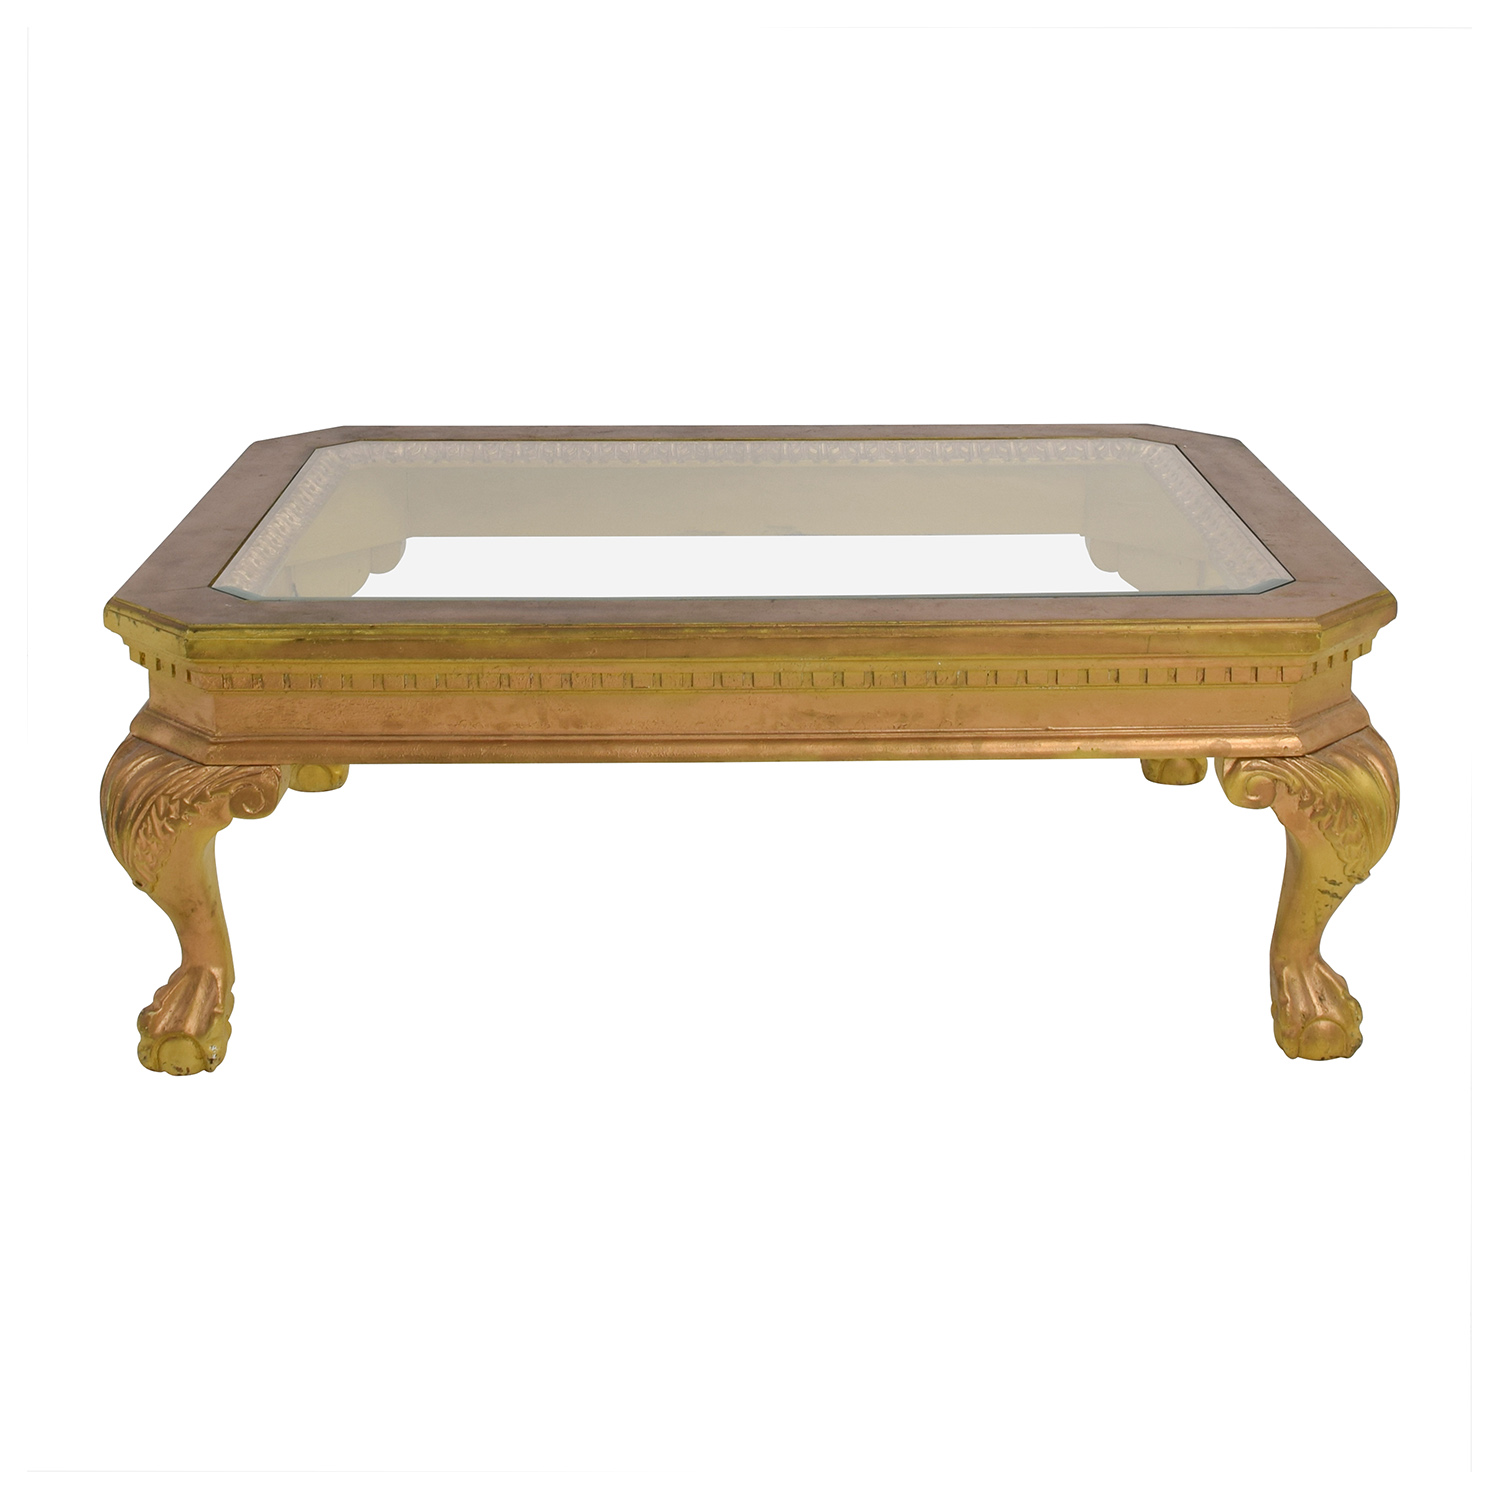 75 Off Distressed Wood Antique Gold And Glass Coffee Table Tables